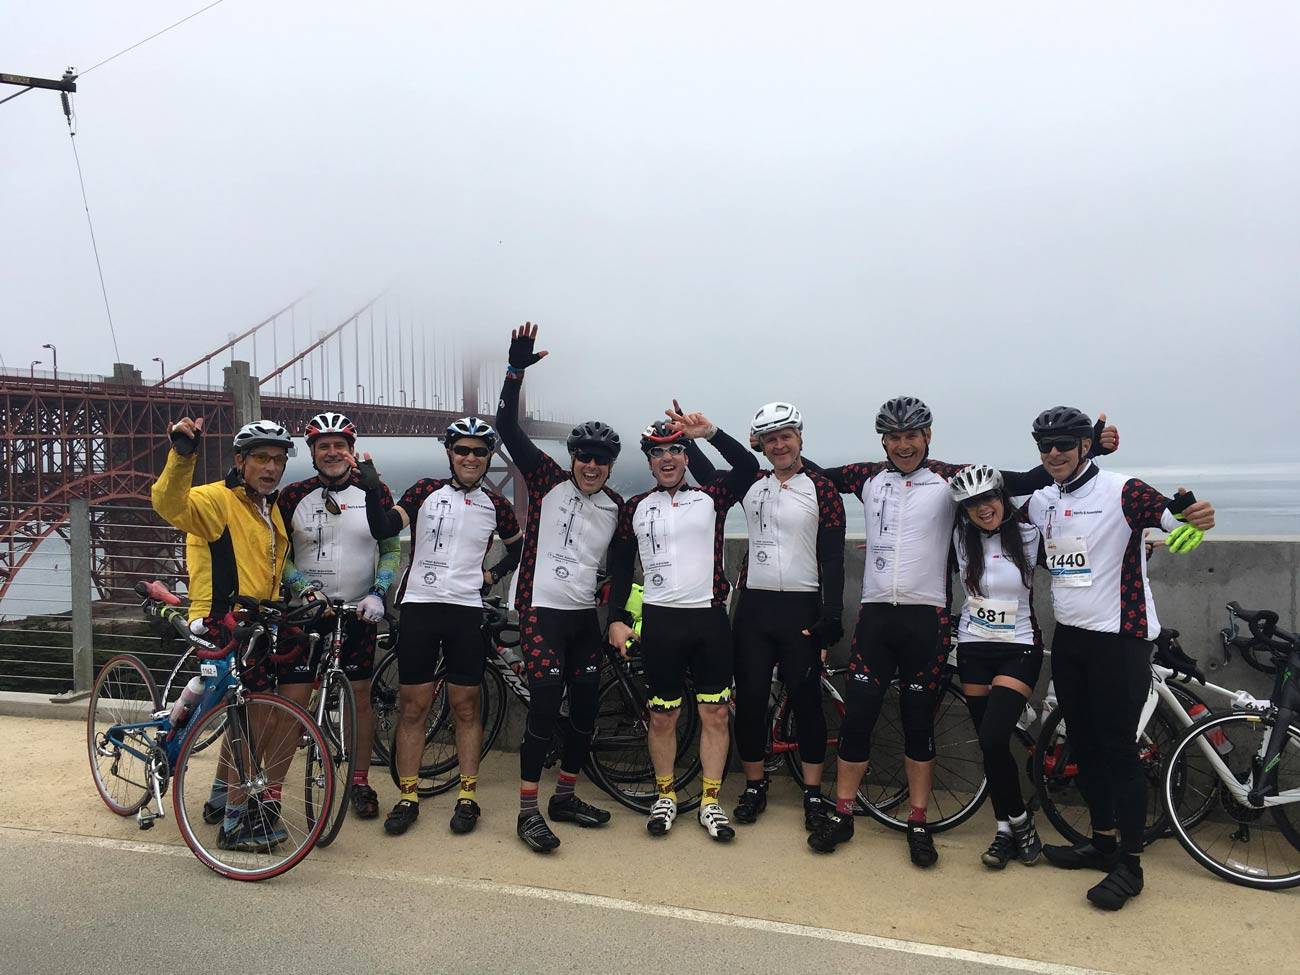 Harris' cycling team riding to end MS in San Francisco.